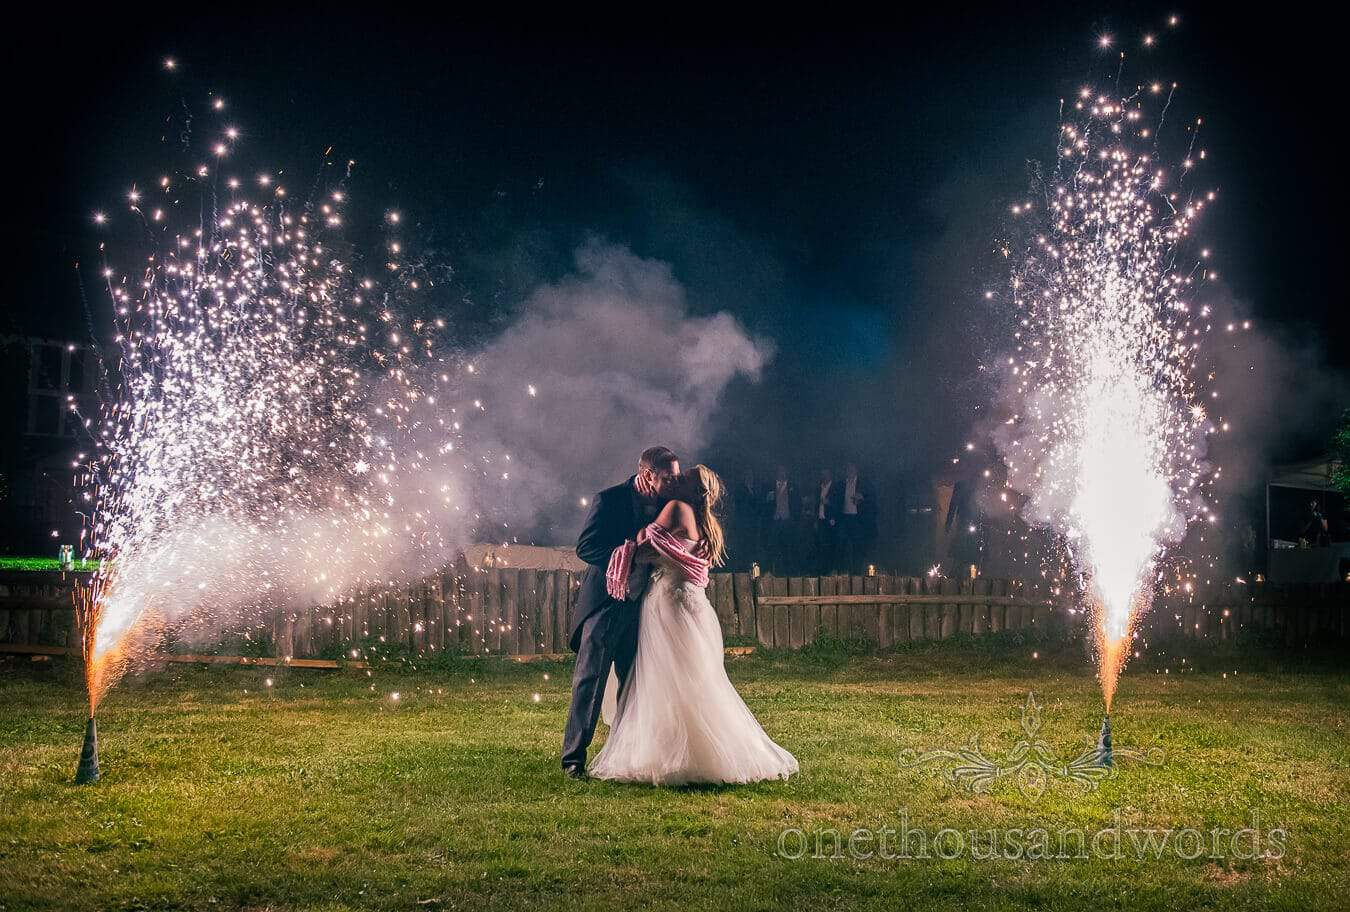 Dorset Home Wedding fireworks with bride and groom kissing